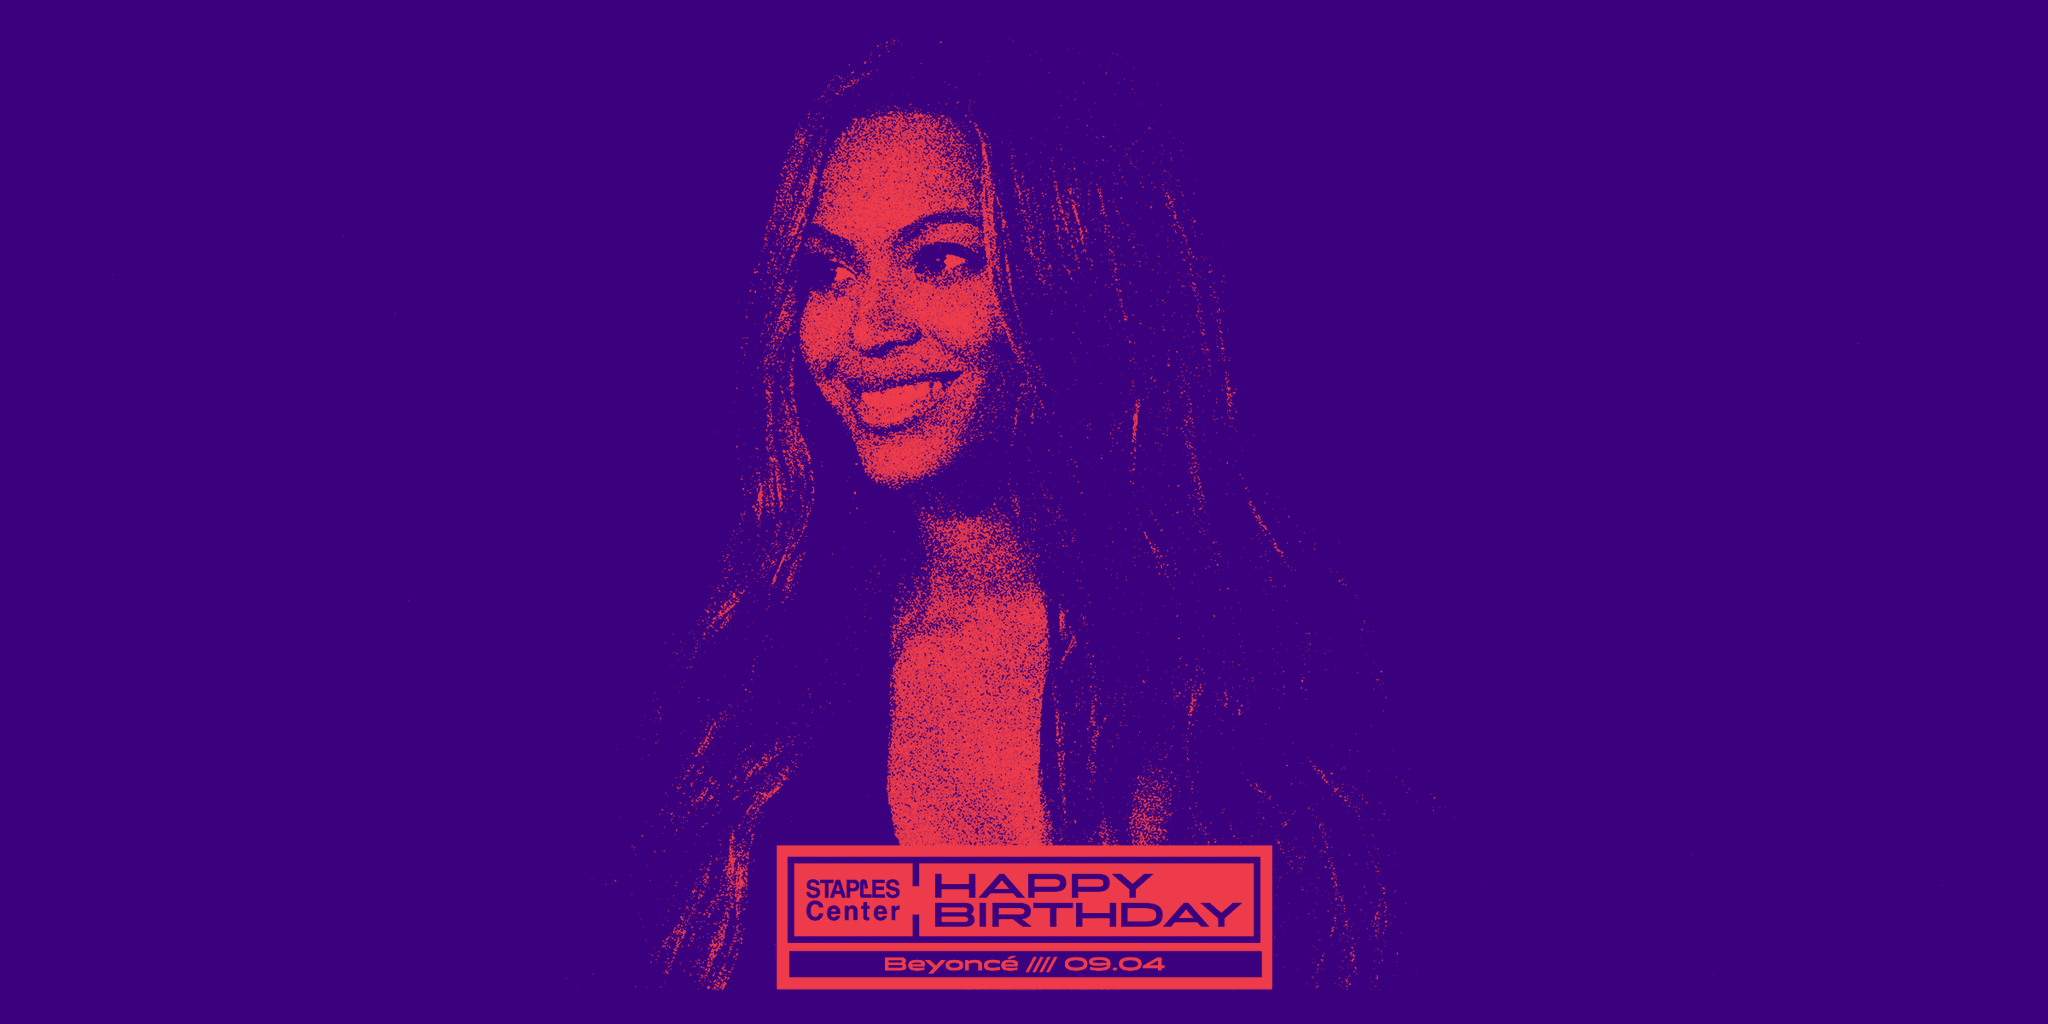 Happy birthday to the Queen,